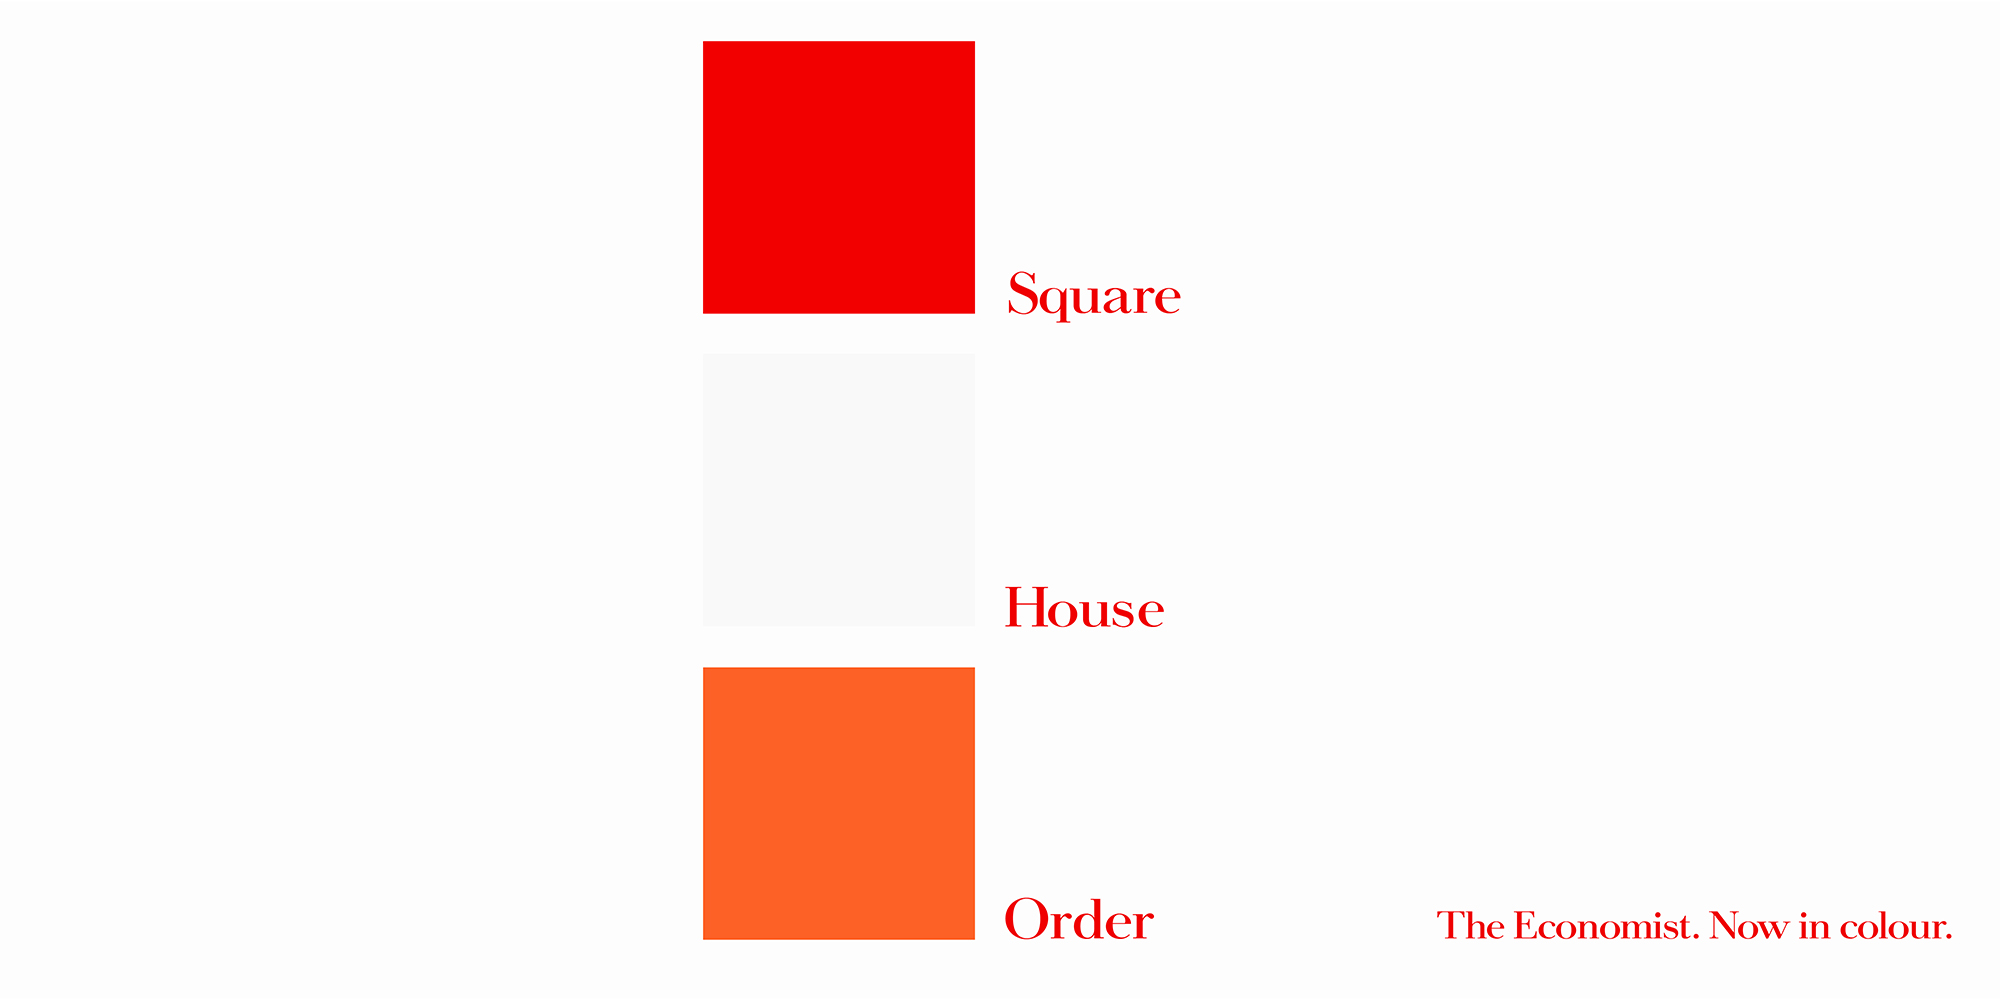 'Red Square' The Economist_Colour, Dave Dye, AMV_BBDO.